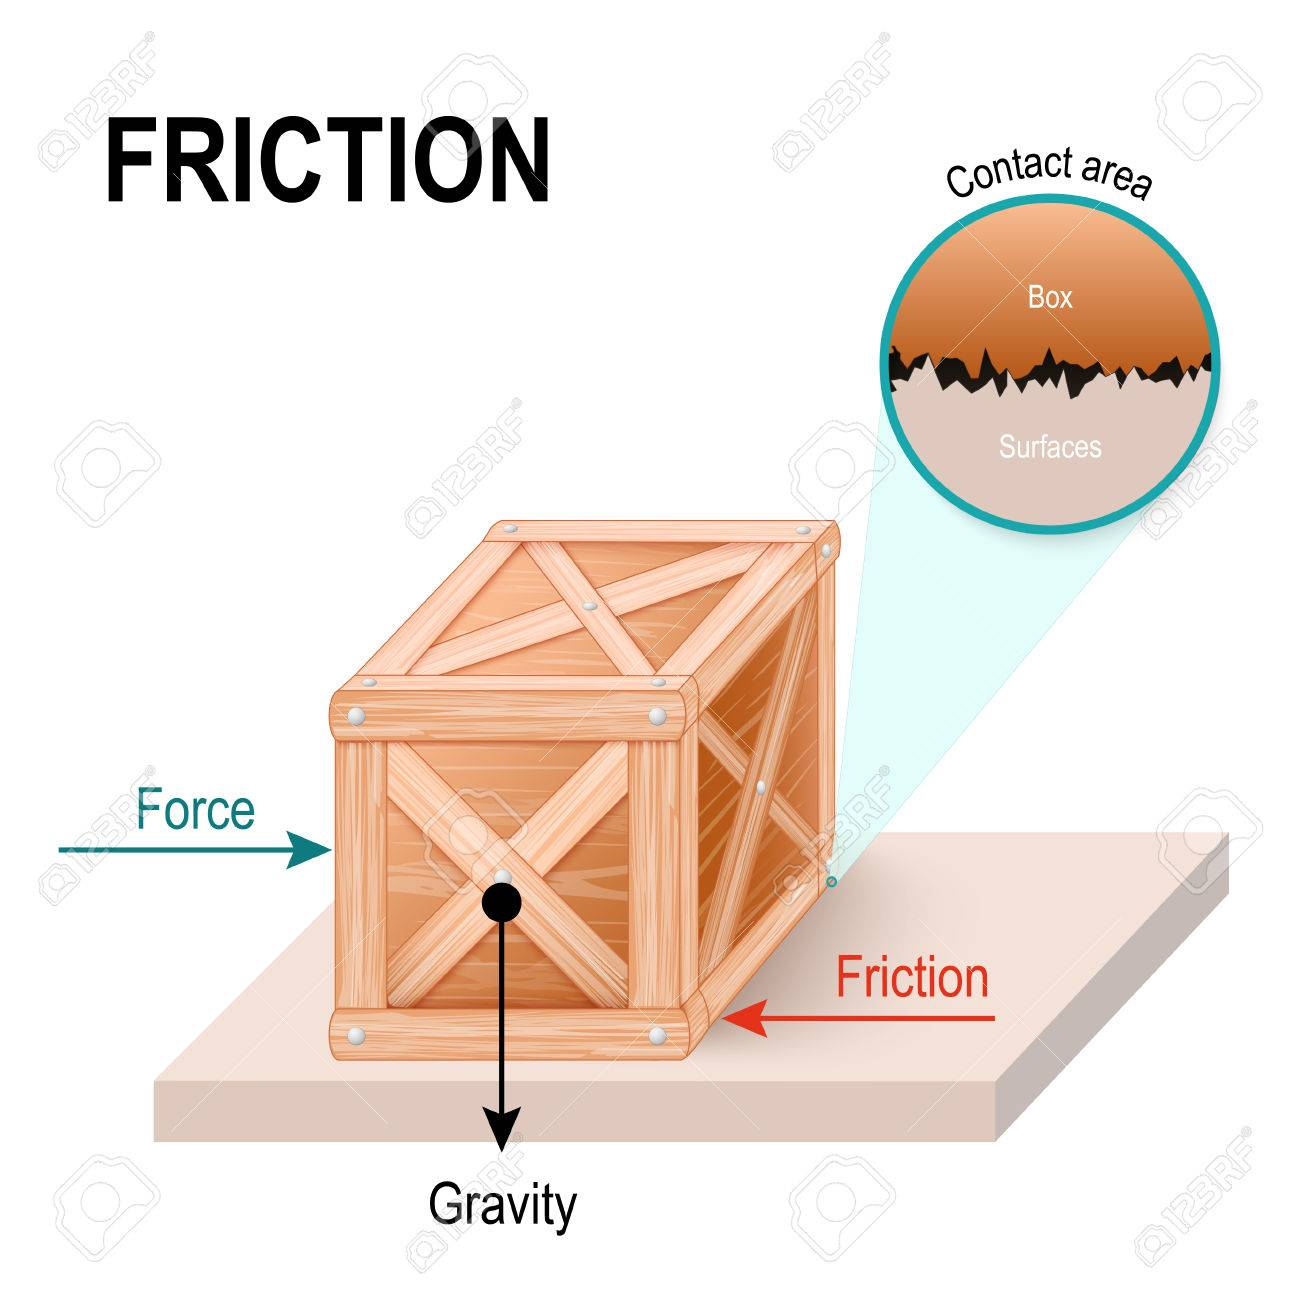 Friction is a force exerted by a surface. - 74576163